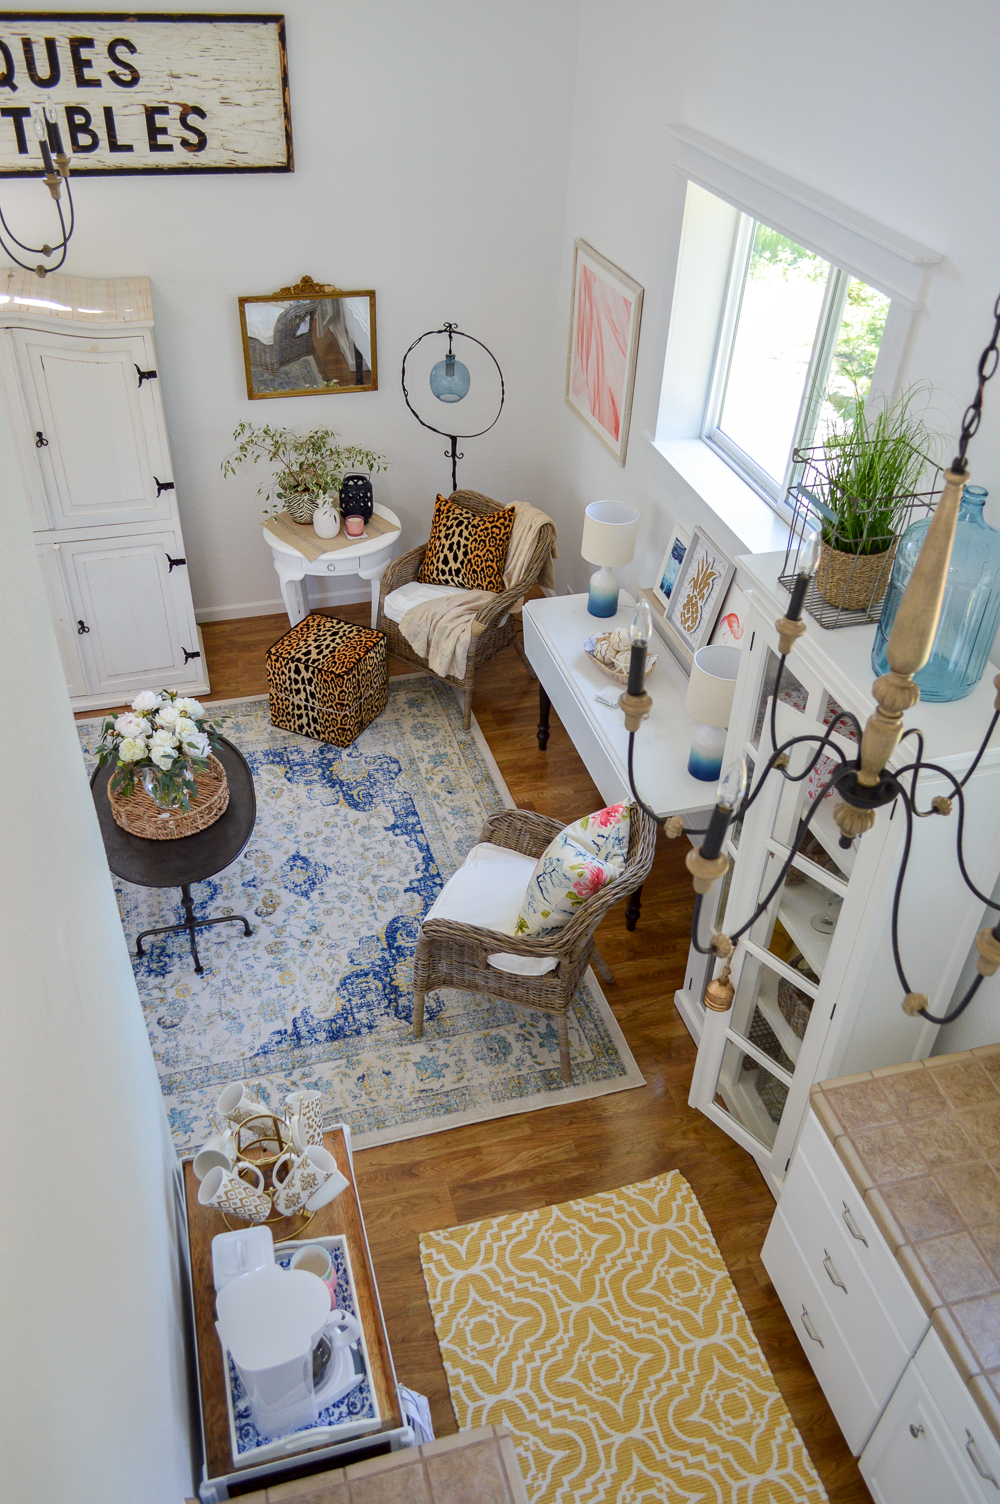 Living Room Makeover Reveal (at The Little Cottage) Guest Cottage Decorating Ideas - Mix Vintage, Cottage, Farmhouse with Modern Prints & Colors!